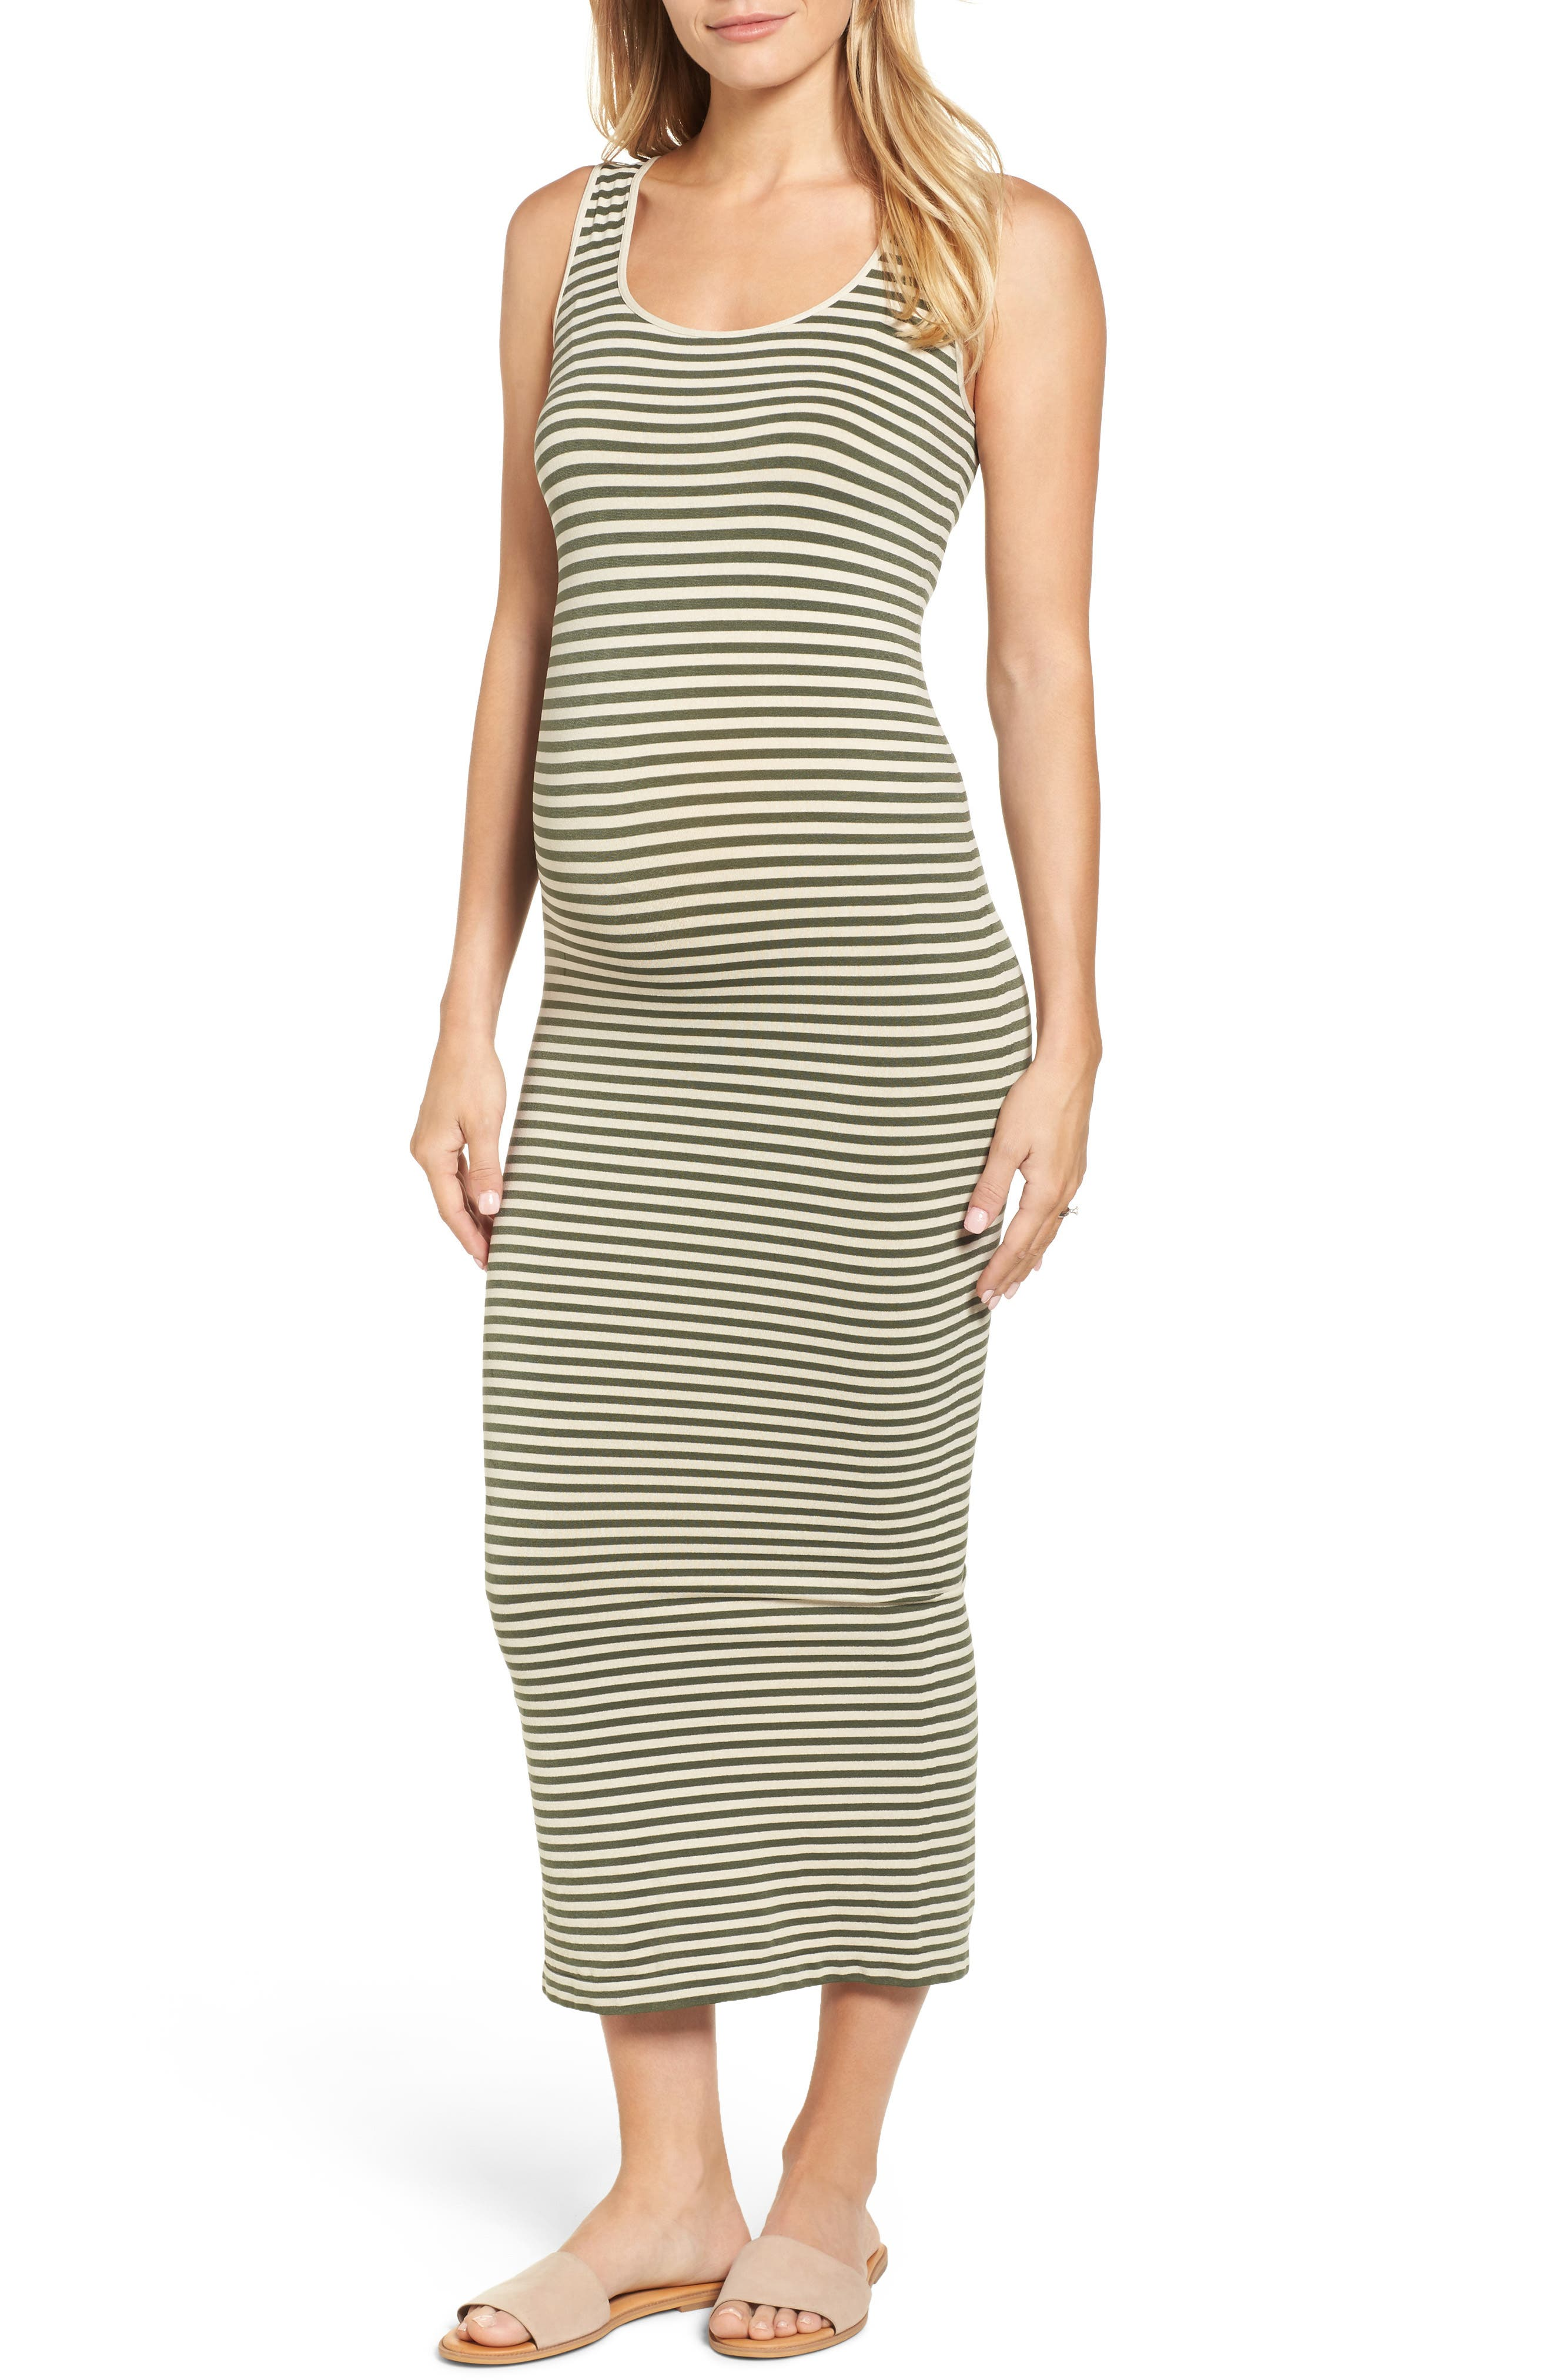 Tees by Tina Micro Stripe Maternity Dress